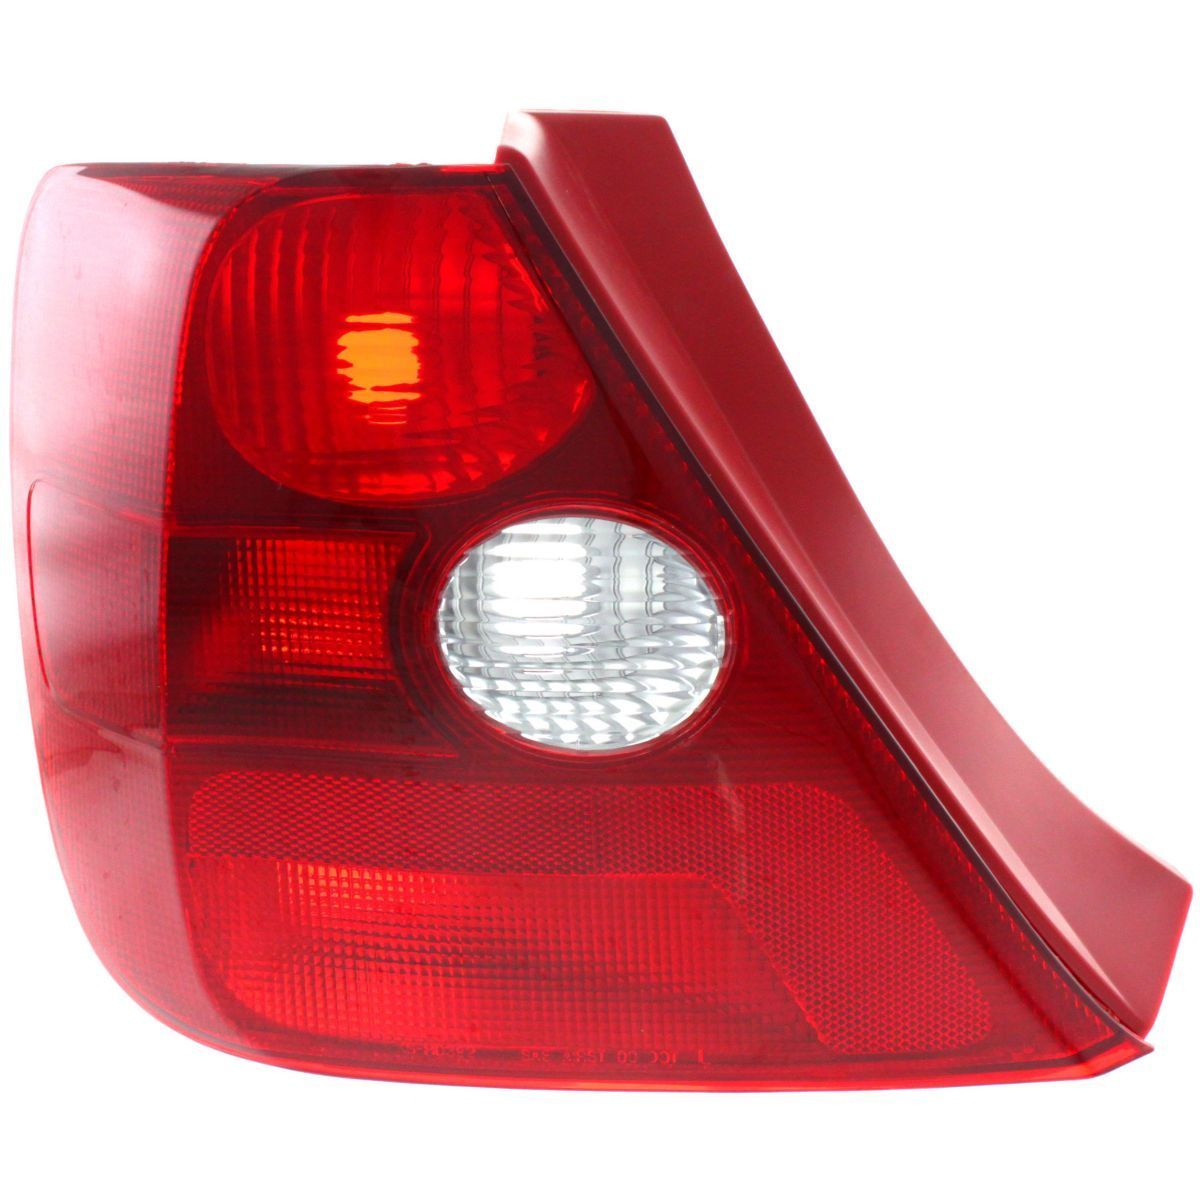 <b> New LH Side Tail Lamp Lens And Housing Fits 2002-2003 Honda Civic HO2818120 33551S5TA01 <b>